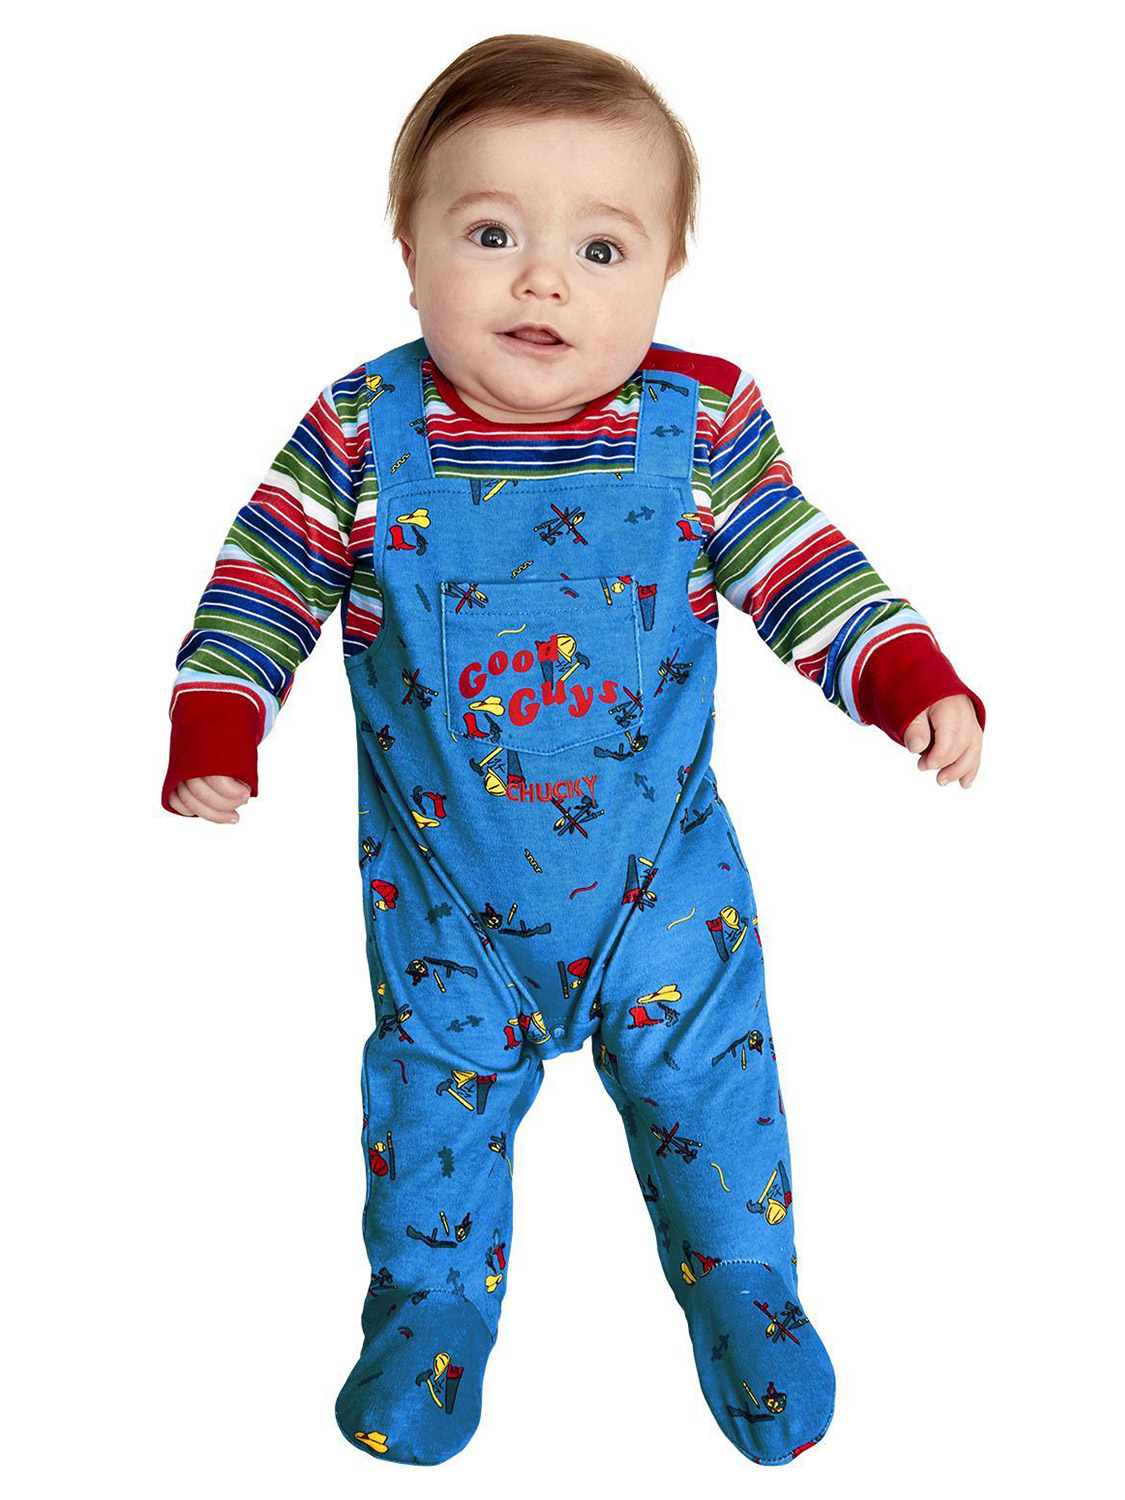 Toddlers Mouse Costume: Baby Toddler Chucky Costume Kids Killer Doll Halloween